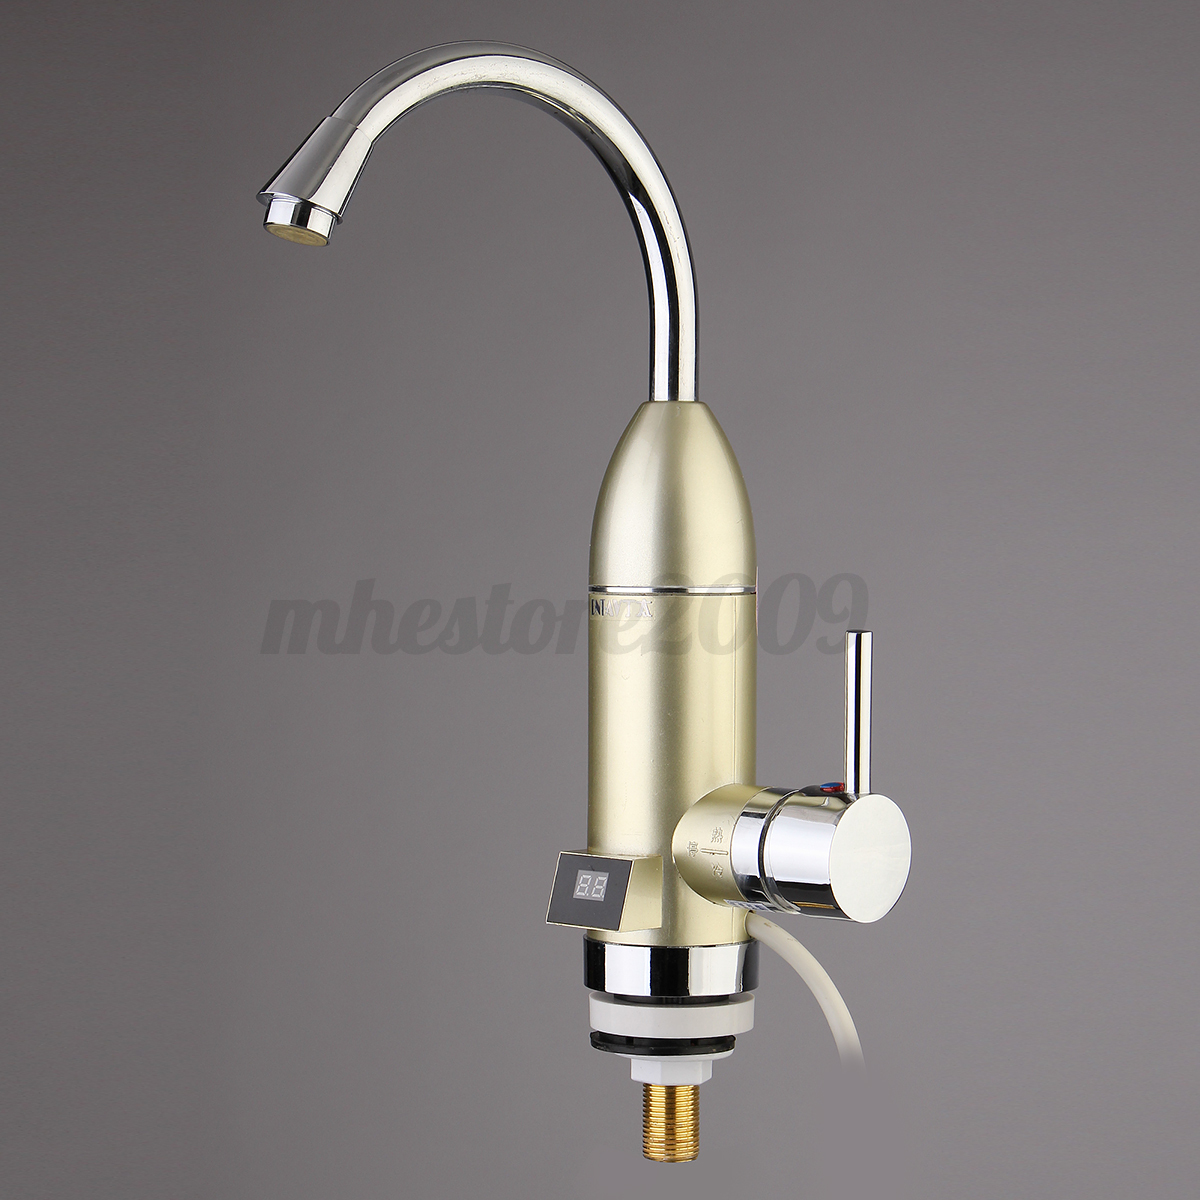 Kitchen Faucets Ebay 220v Digital Led Display Instant Electric Faucet Heating